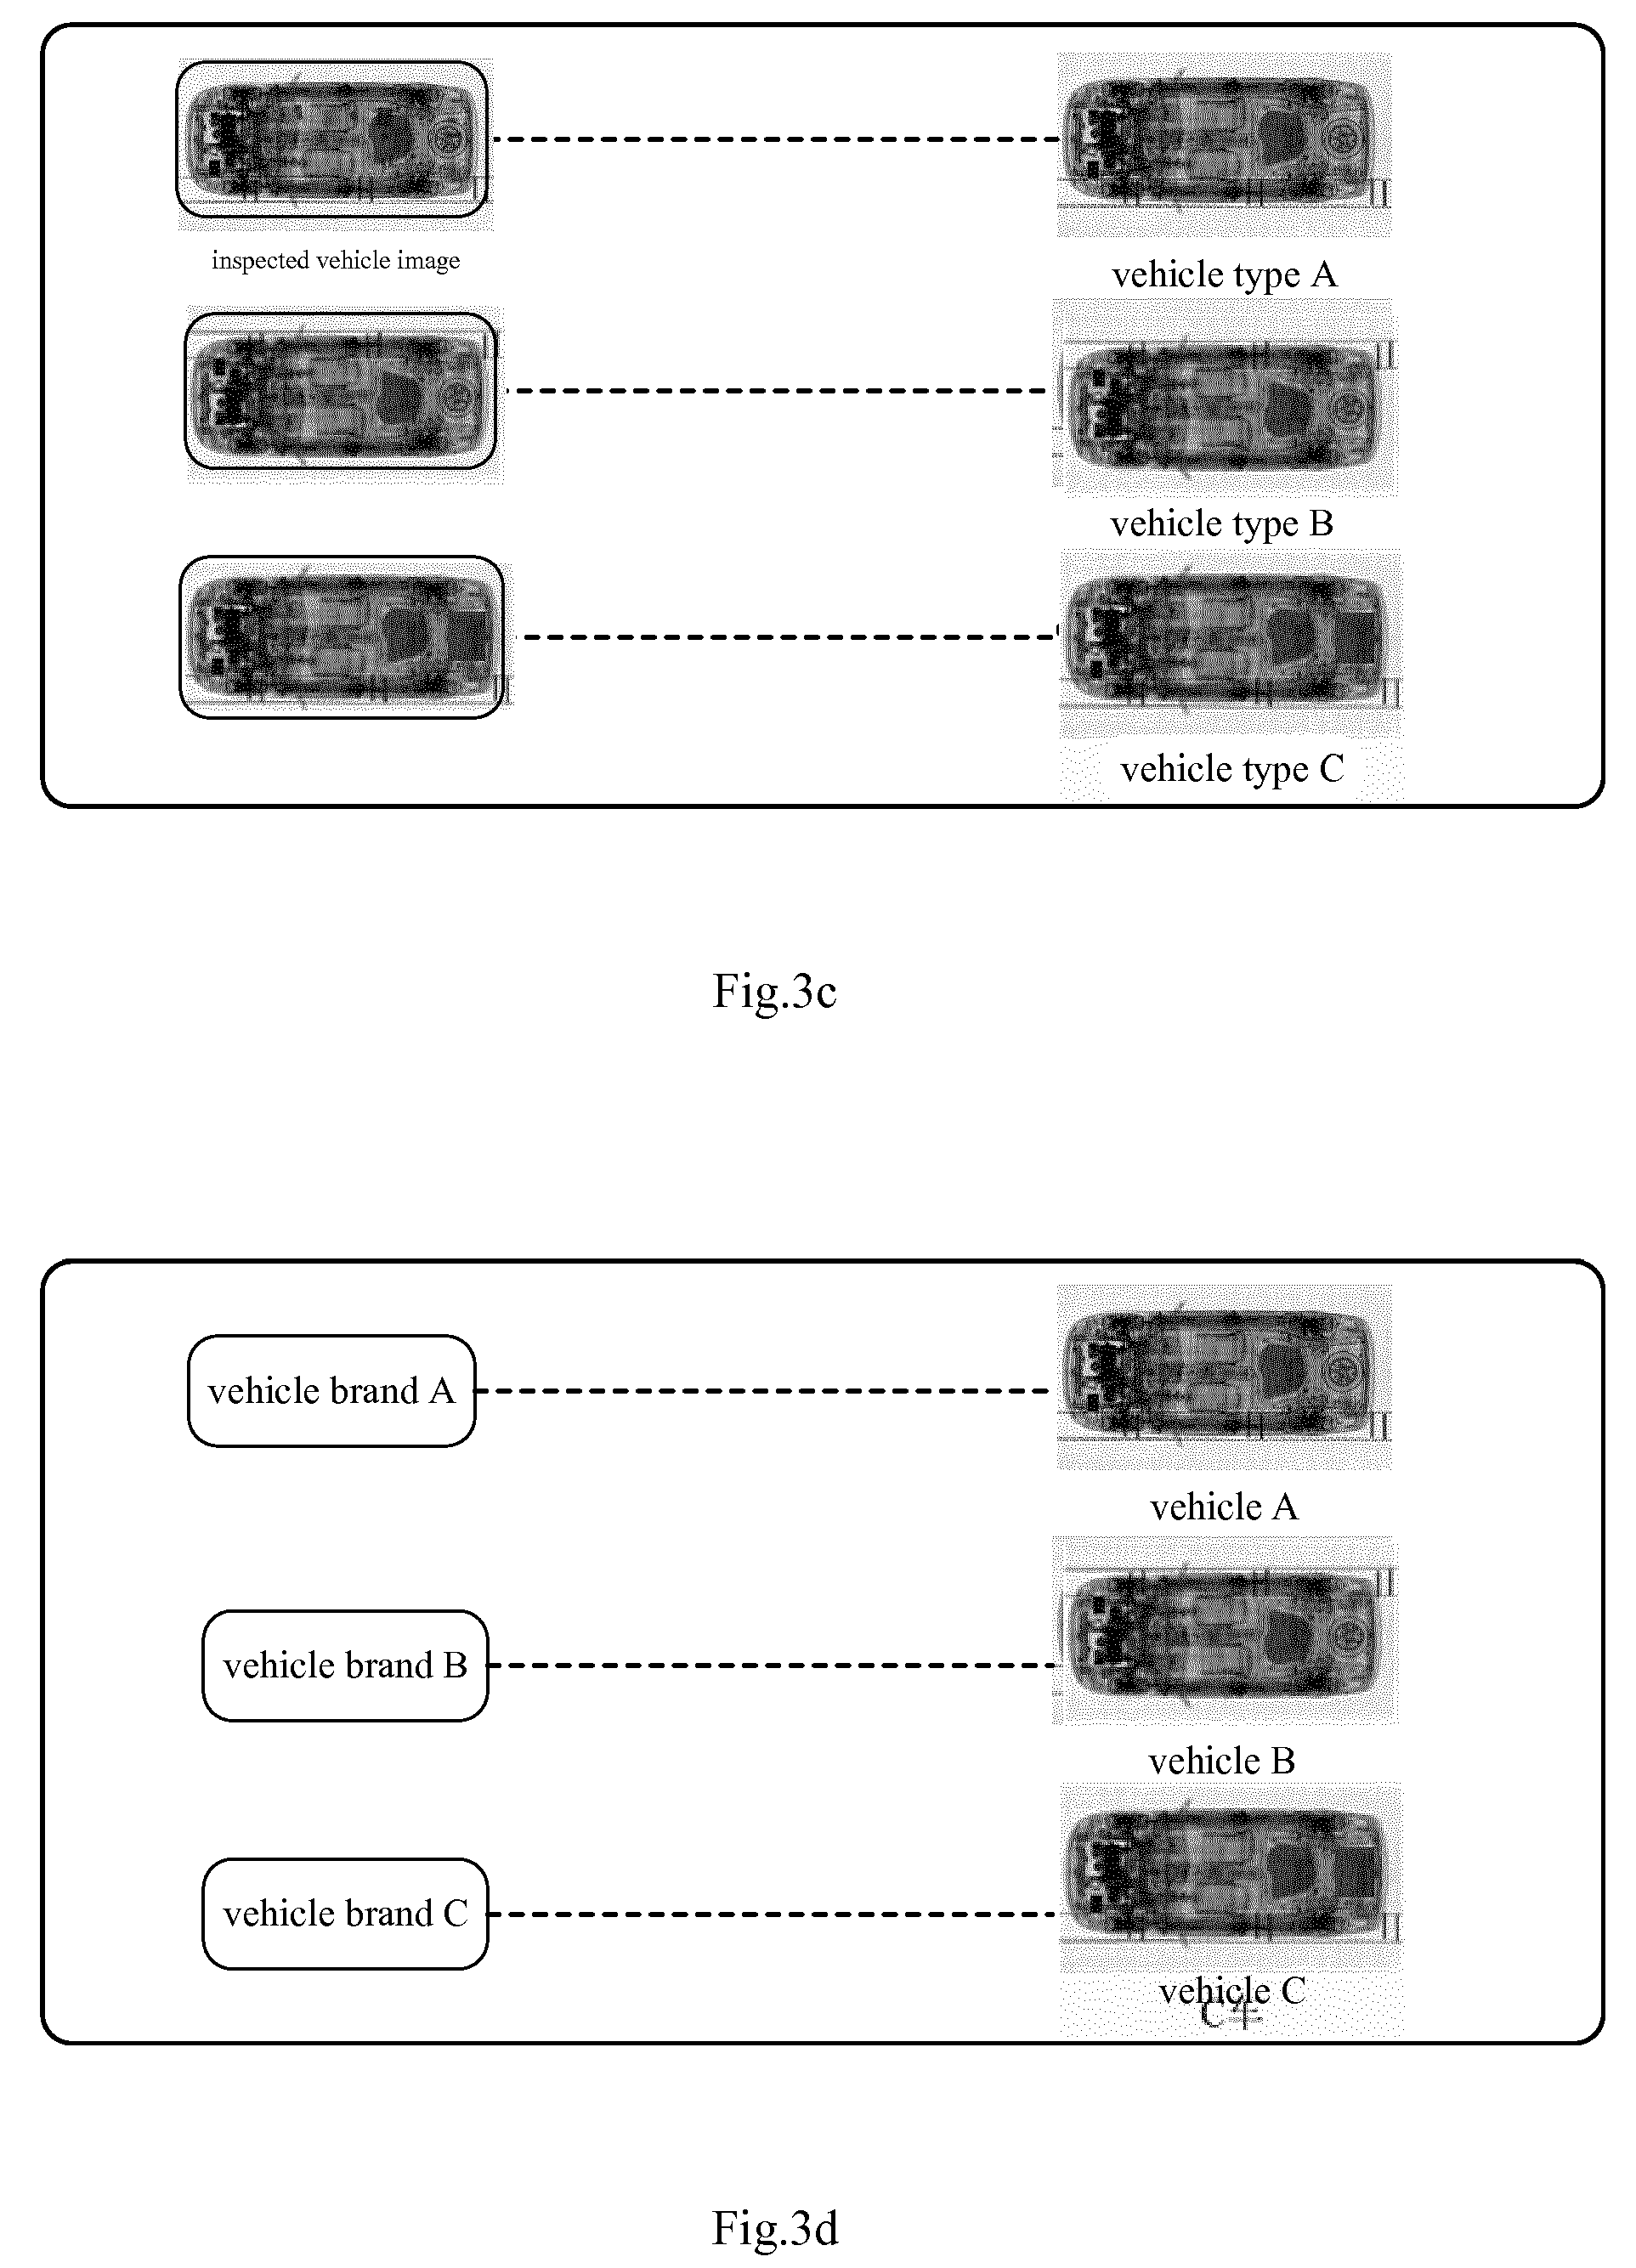 EP3035087A1 - Vehicle inspection system and method with vehicle